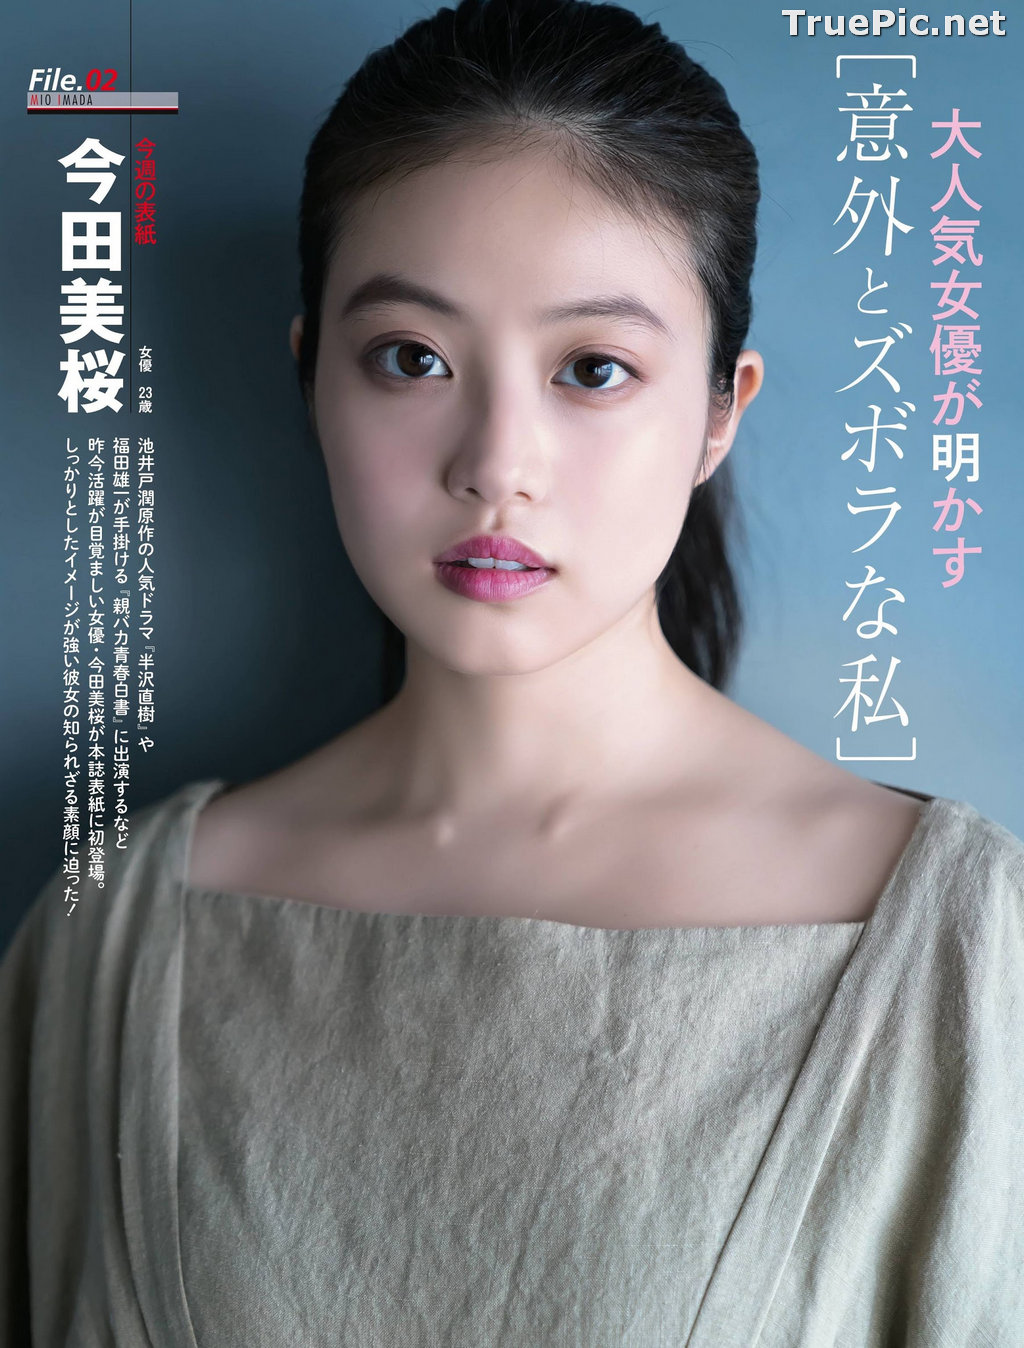 Image Japanese Actress and Model - Mio Imada (今田美櫻) - Sexy Picture Collection 2020 - TruePic.net - Picture-6